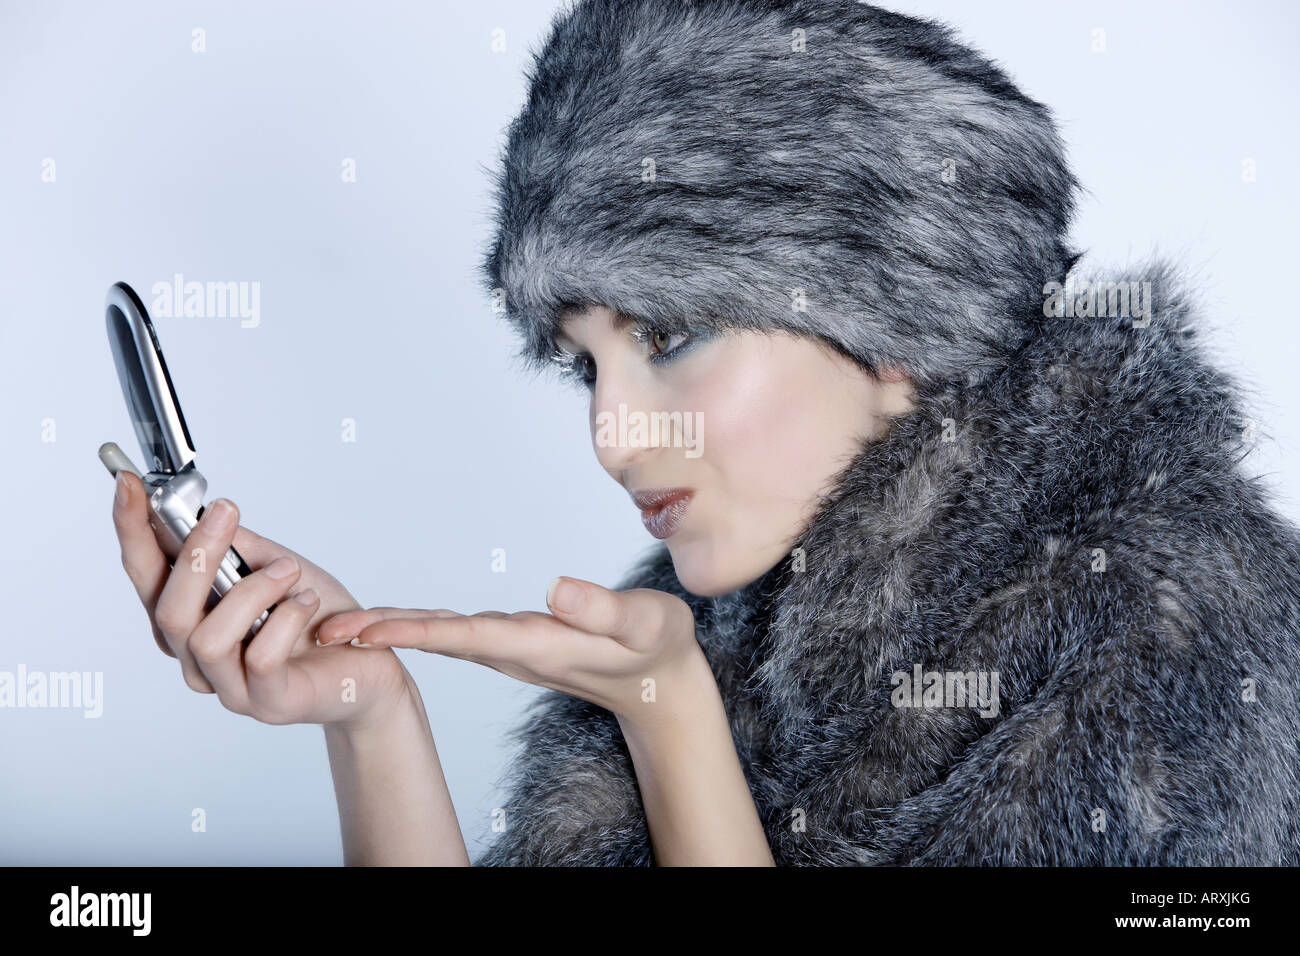 fcac82c6c4b studio shot portrait of a beautiful woman russian type in a fur coat and hat  kissing